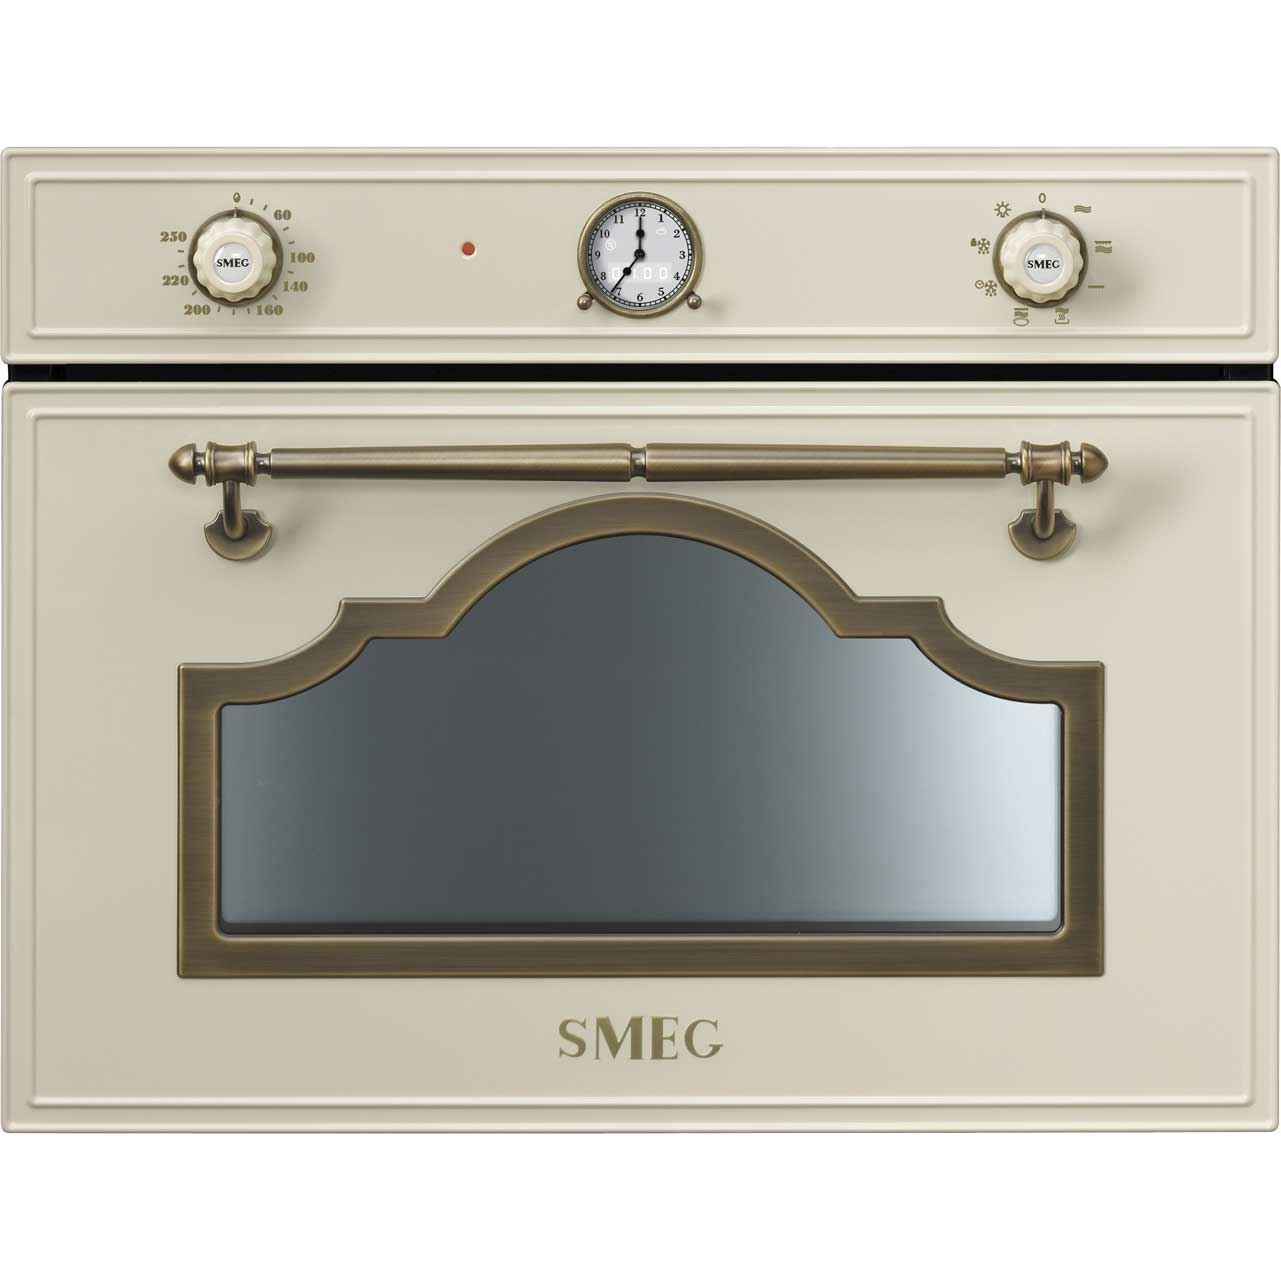 Integrated Microwave Buy Cheap Integrated Microwave Compare Cookers And Ovens